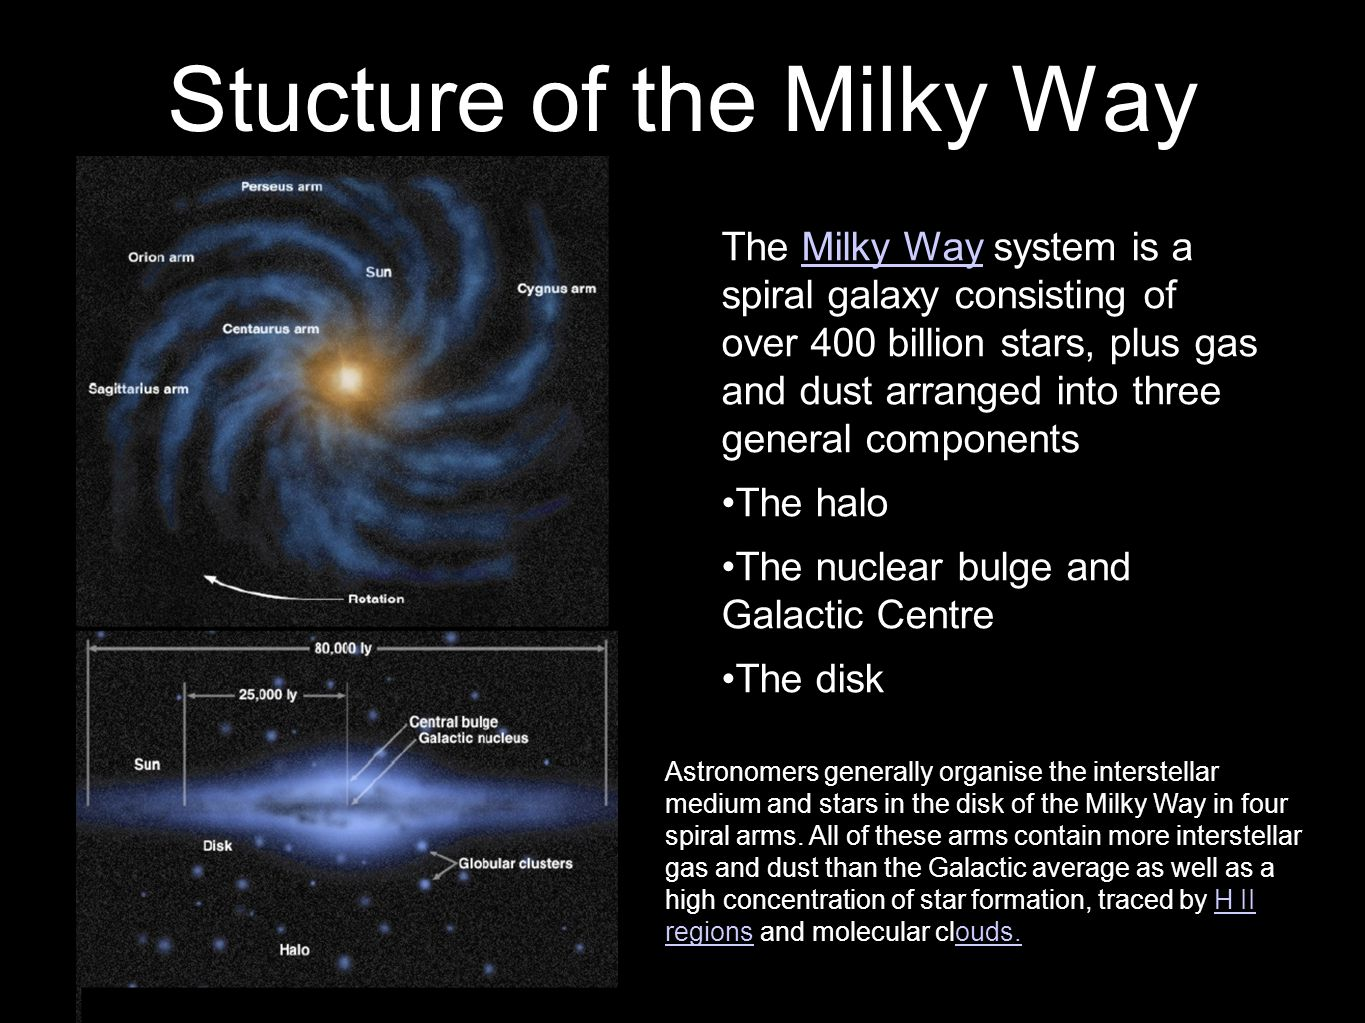 6 Stucture of the Milky Way 2 The Milky Way system is a spiral galaxy consisting of over 400 billion stars, plus gas and dust arranged into three general componentsMilky Way The halo The nuclear bulge and Galactic Centre The disk Astronomers generally organise the interstellar medium and stars in the disk of the Milky Way in four spiral arms.